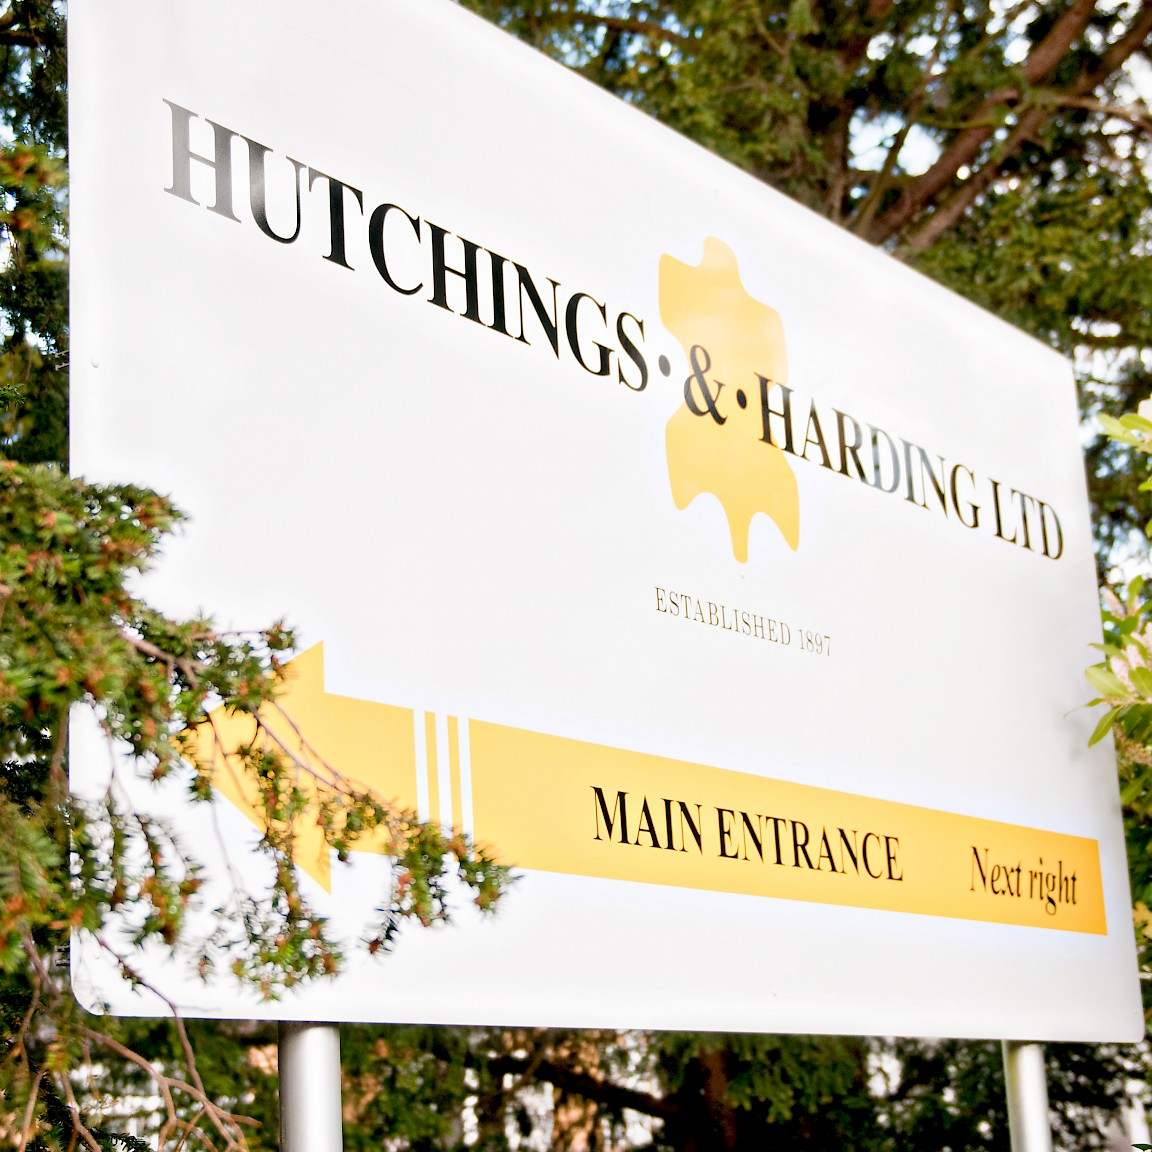 Hutchings & Harding Ltd